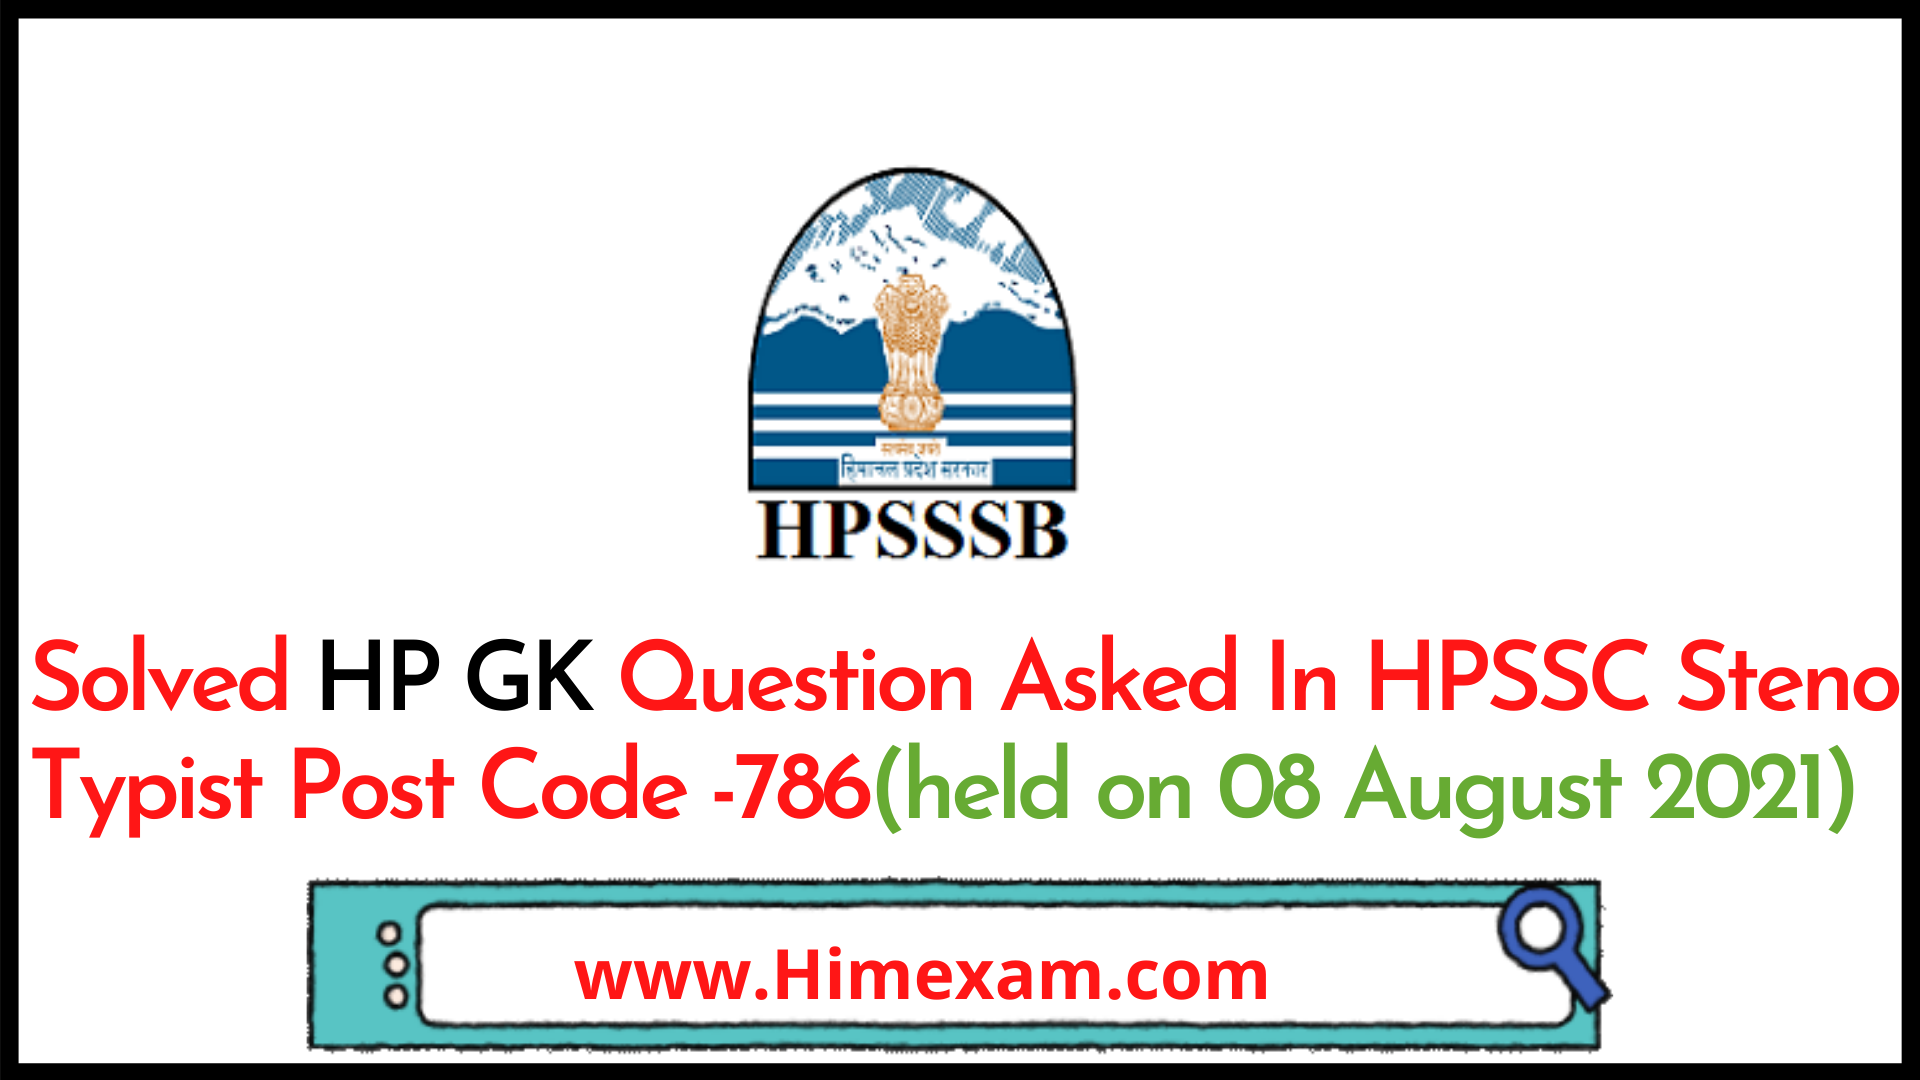 Solved HP GK Question Asked In HPSSC Steno Typist Post Code -786(held on 08 August 2021)